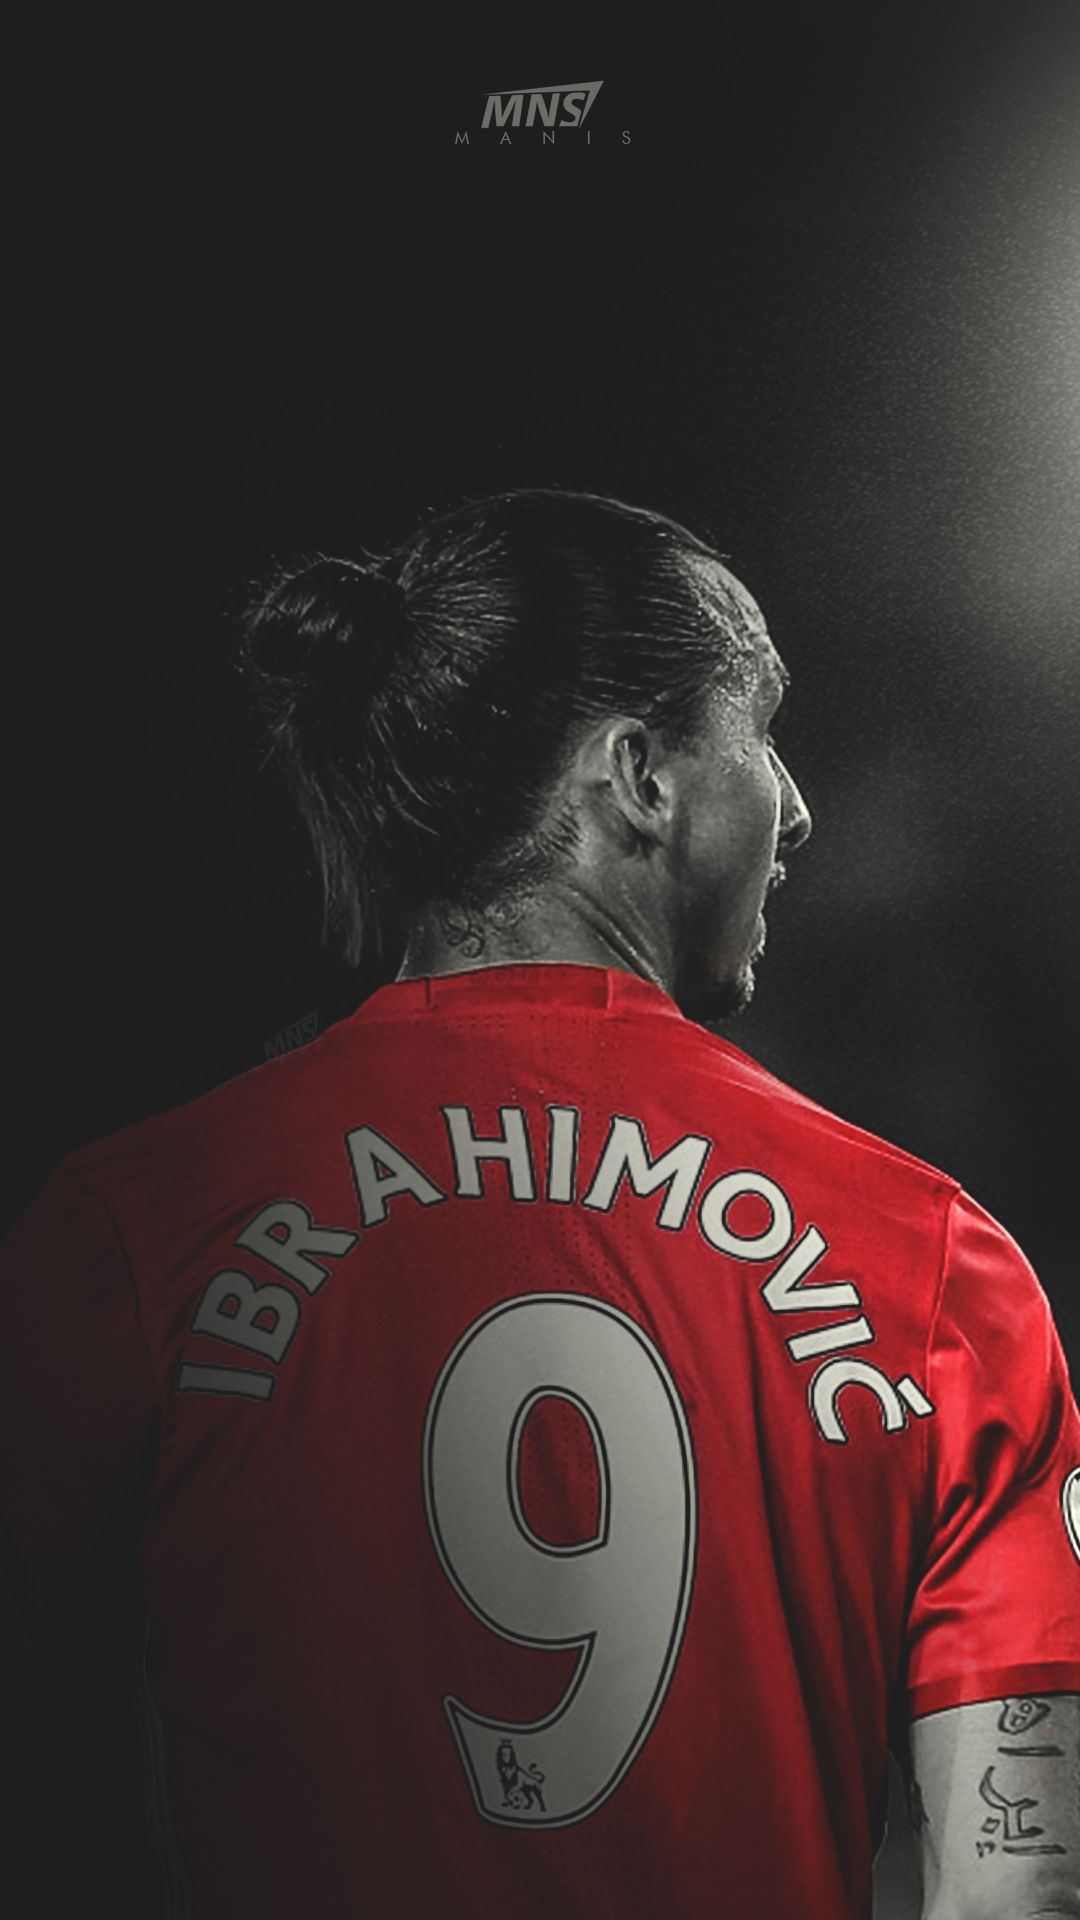 Iphone wallpaper tumblr football - Zlatan Ibrahimovic Tumblr